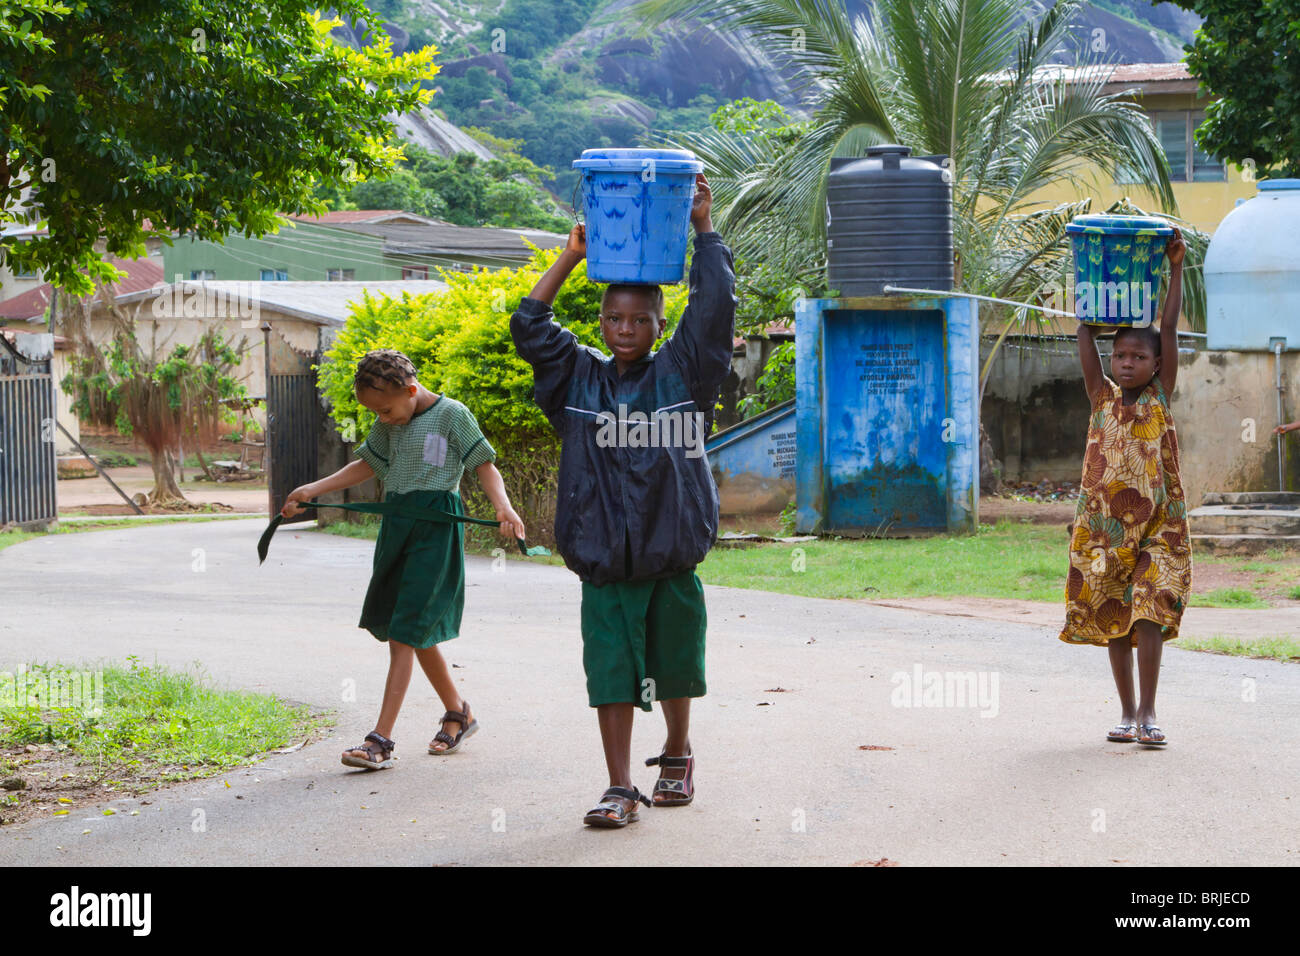 African children bearing buckets of water on their heads. - Stock Image